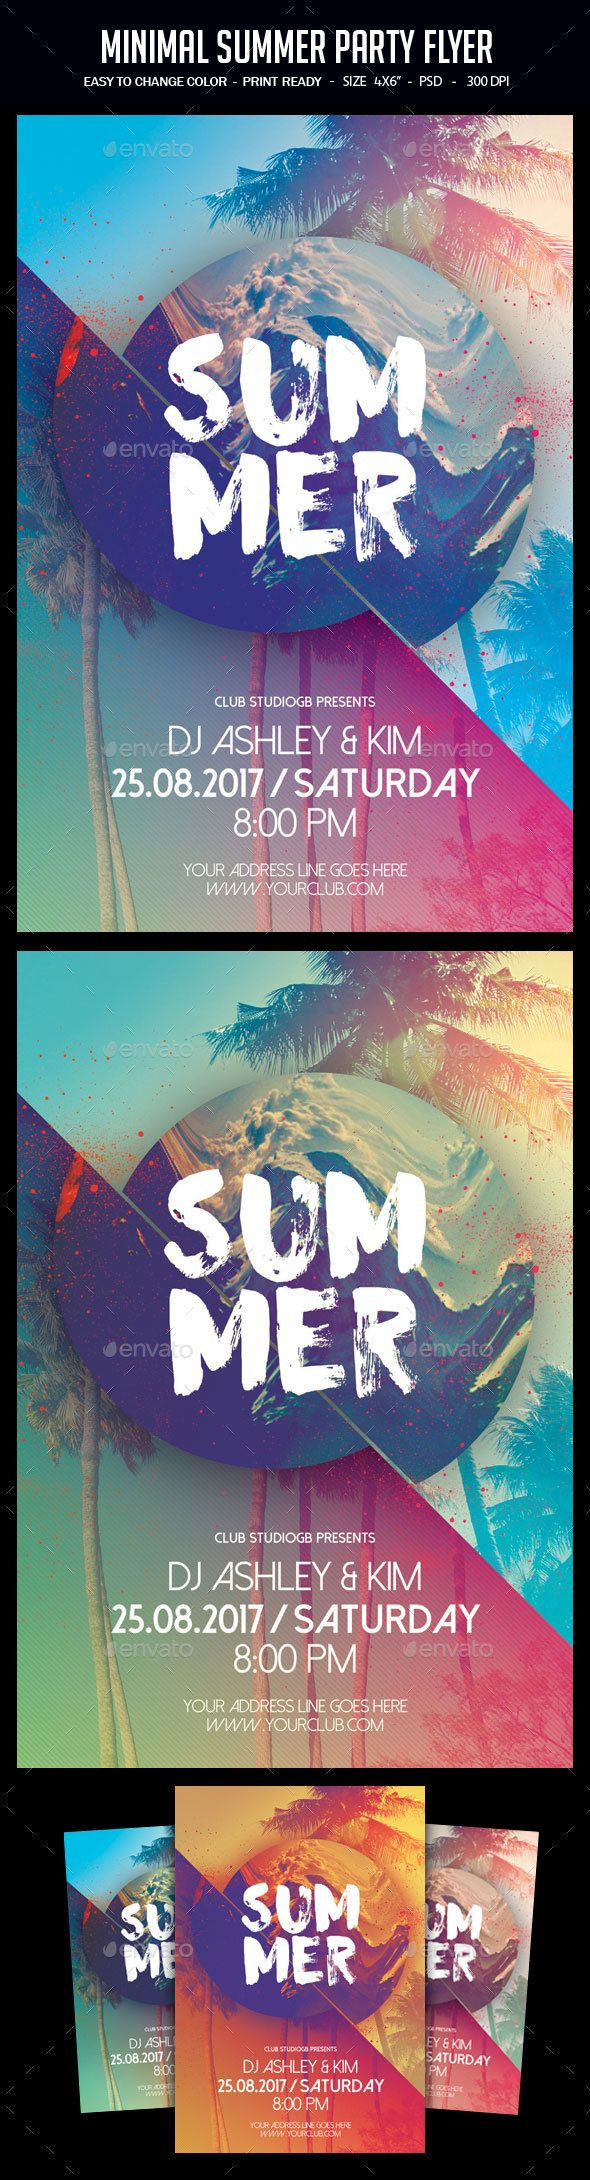 Poster design dimensions - Minimal Summer Party Flyer